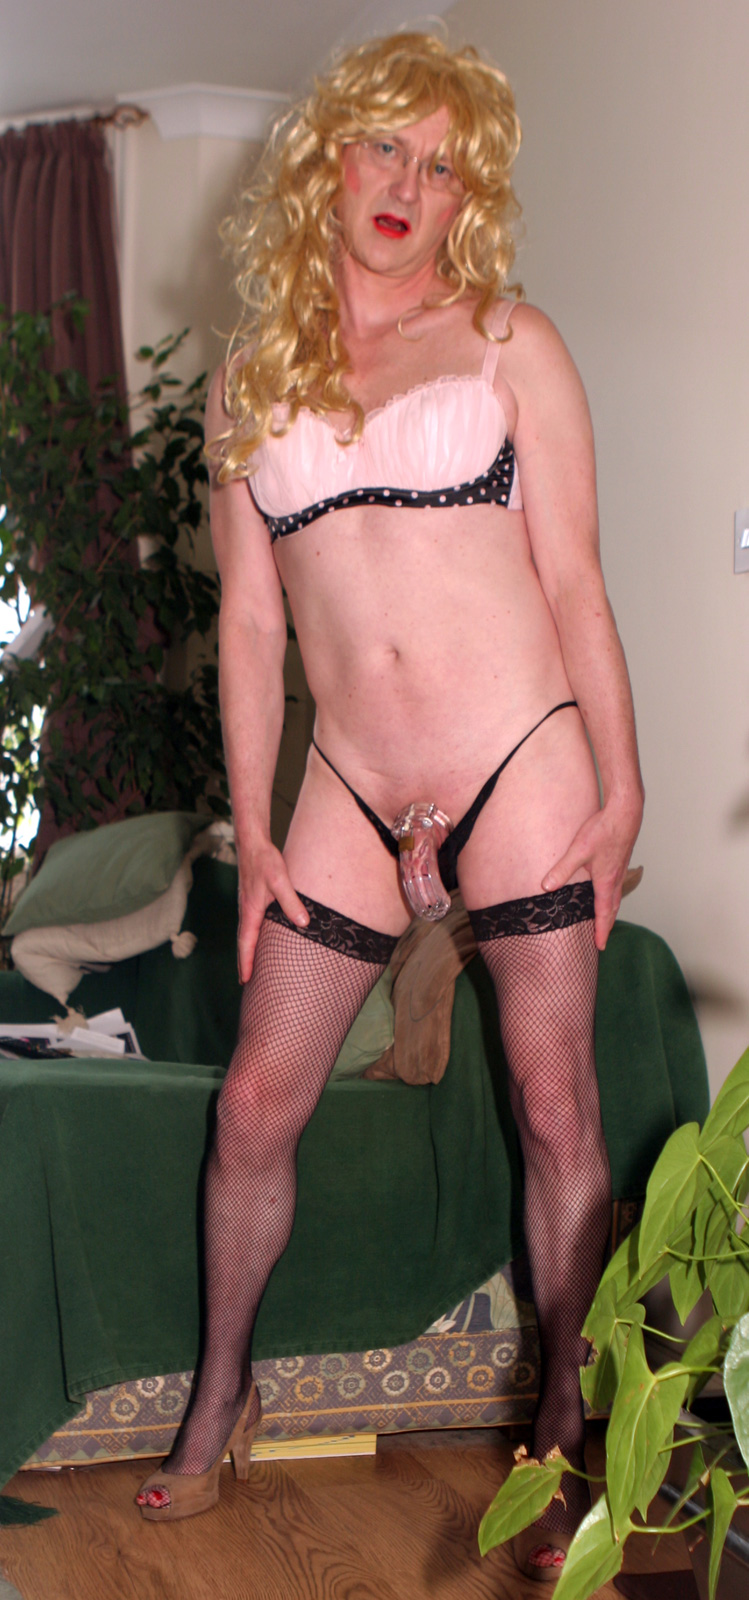 clitty in….or out ?